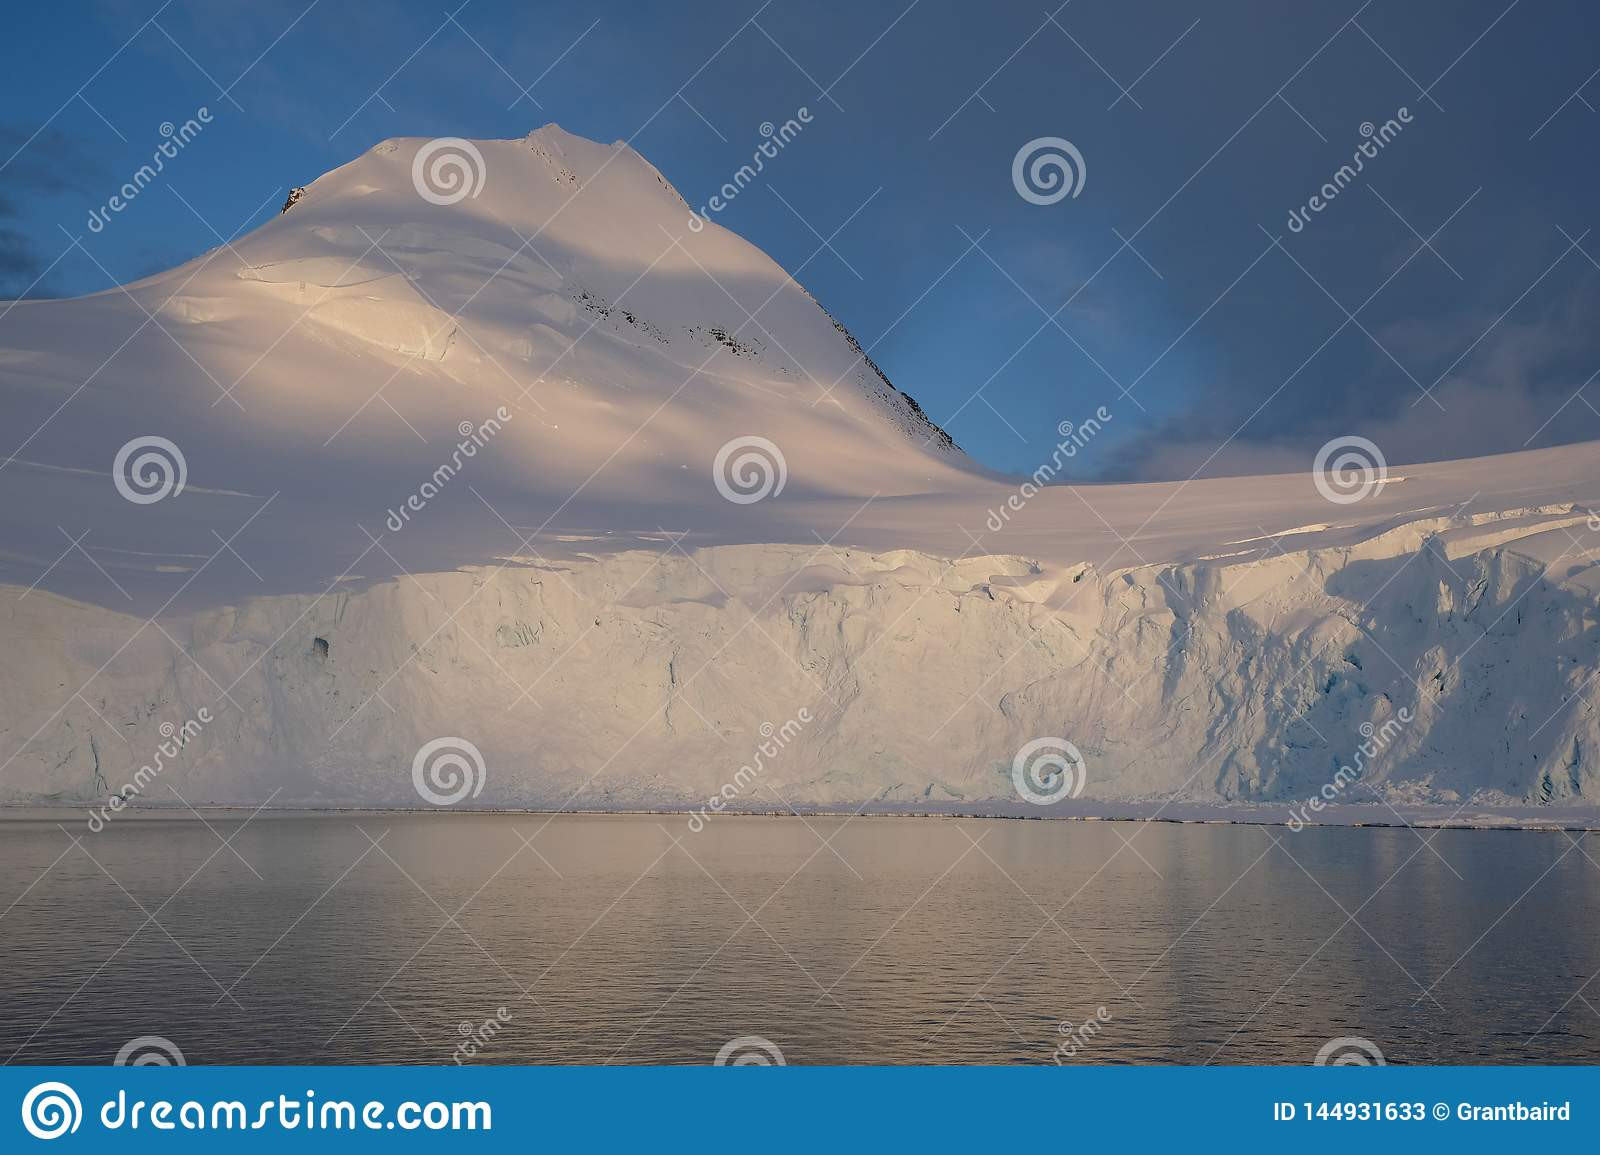 Antarctica calm midnight sunset on snowy mountain